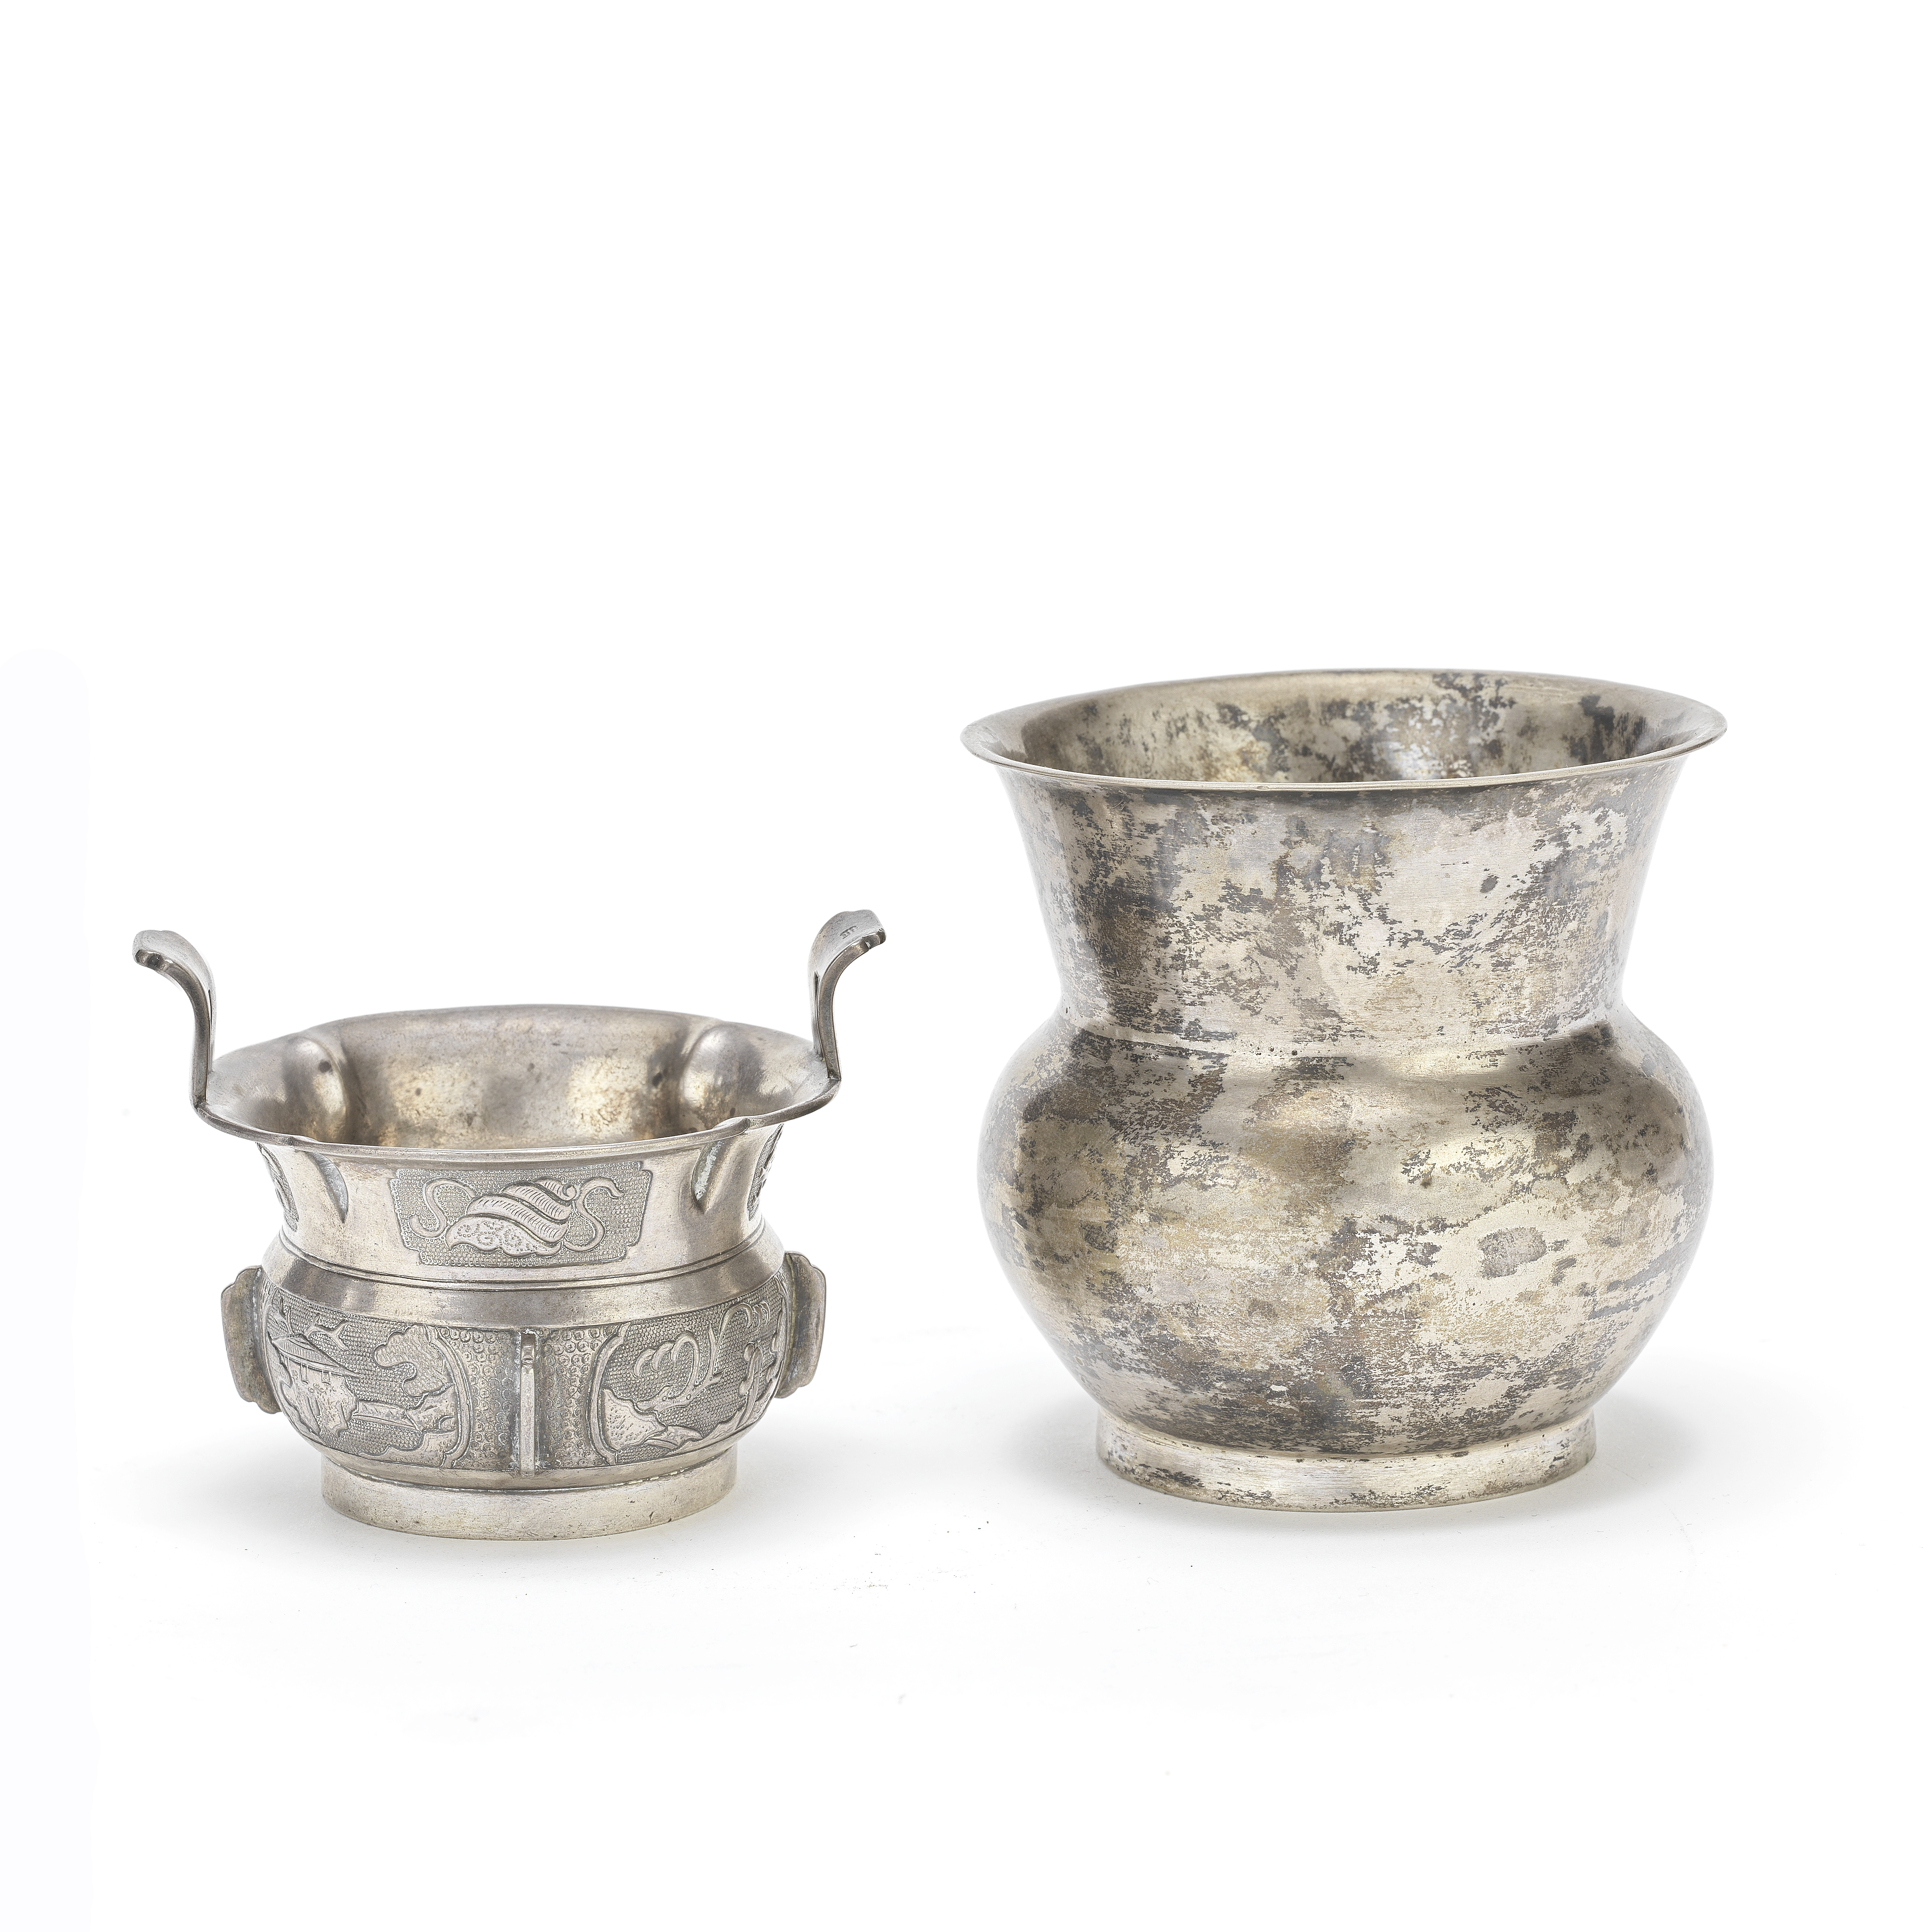 A SMALL SILVER INCENSE BURNER AND A SILVER SPITTOON, ZHADOU Qing Dynasty (2)